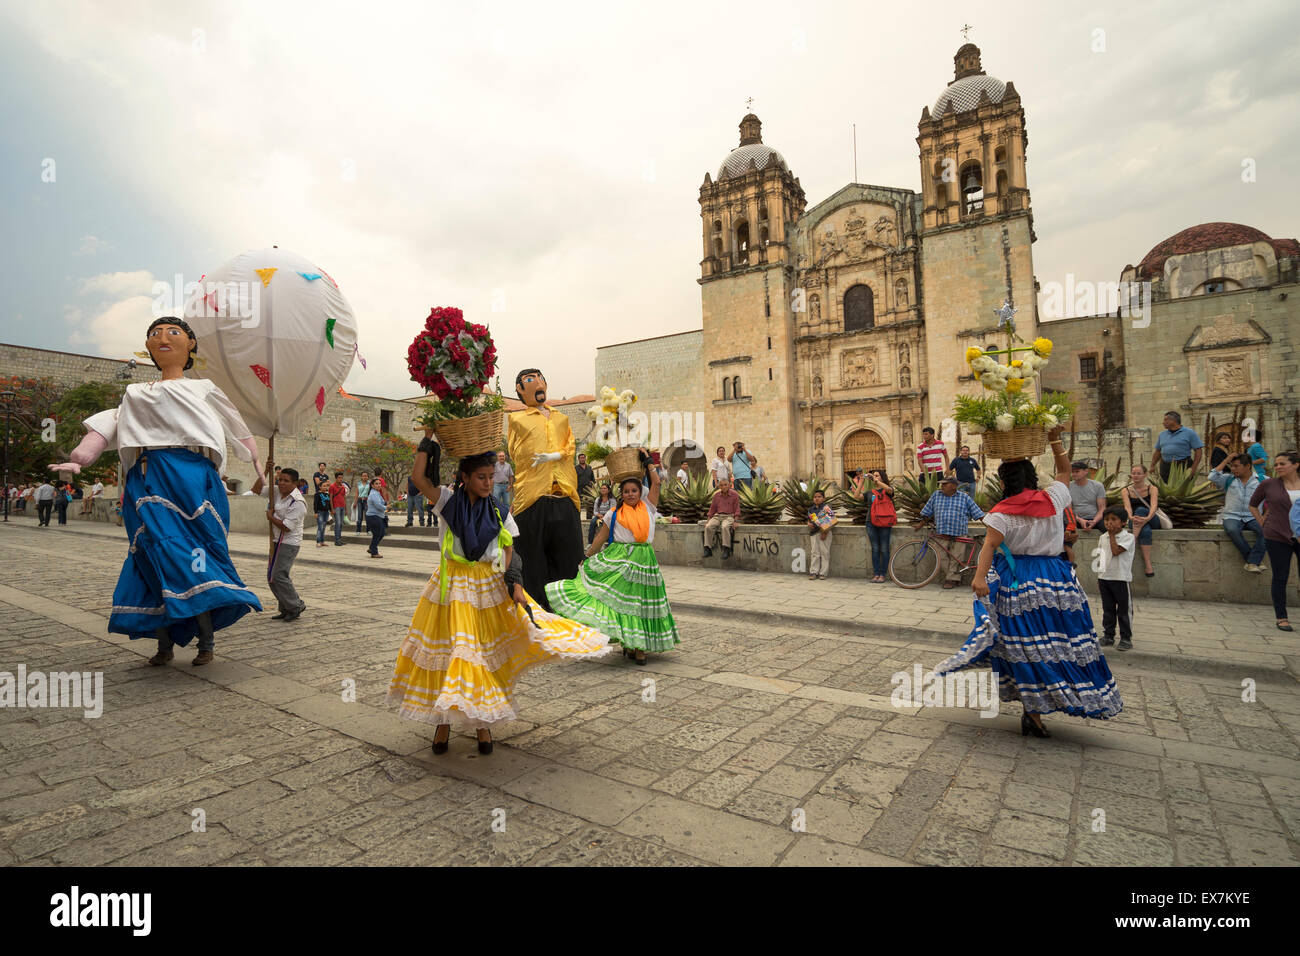 Women in costume and large figures dancing in front of Santo Domingo Church at a traditional festival in Oaxaca - Stock Image